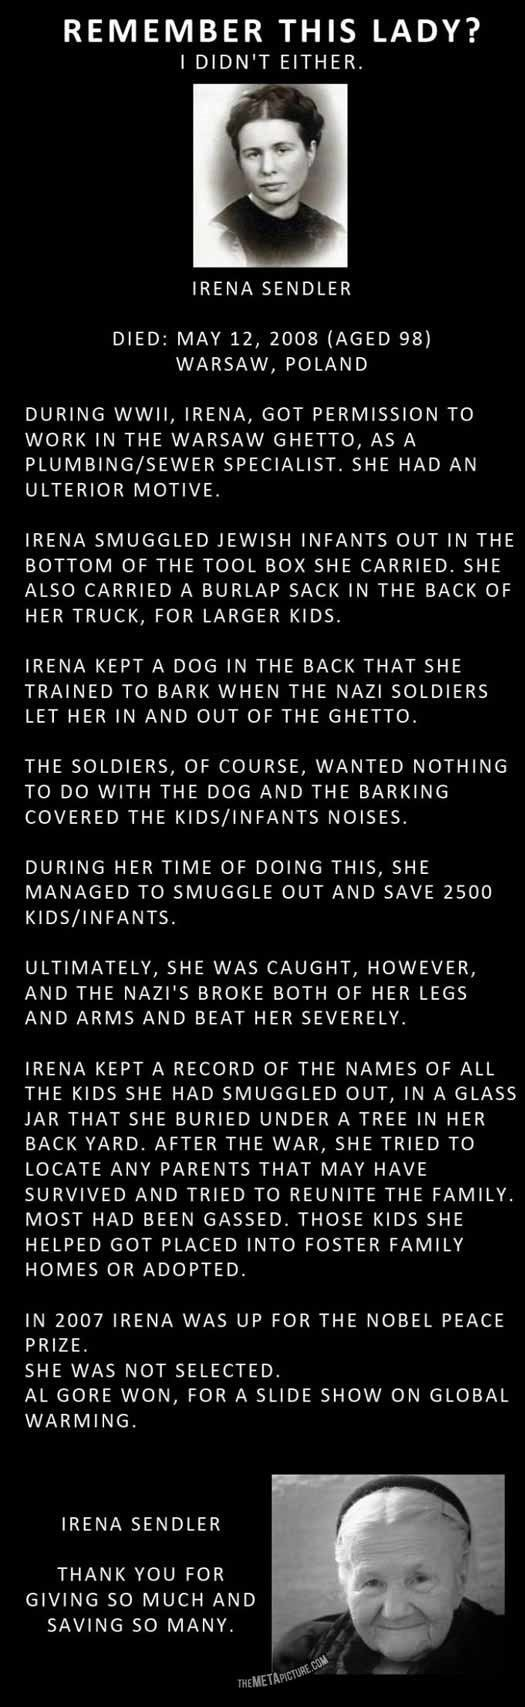 A true hero. . REMEMBER THIS LADY? DIDN' T EITHER, IRENA SENDLER DIED: MAY 12, 2008 (AGED 98) WARSAW, POLAND DURING WWII, IRENA, GOT PERMISSION TO WORK IN THE W